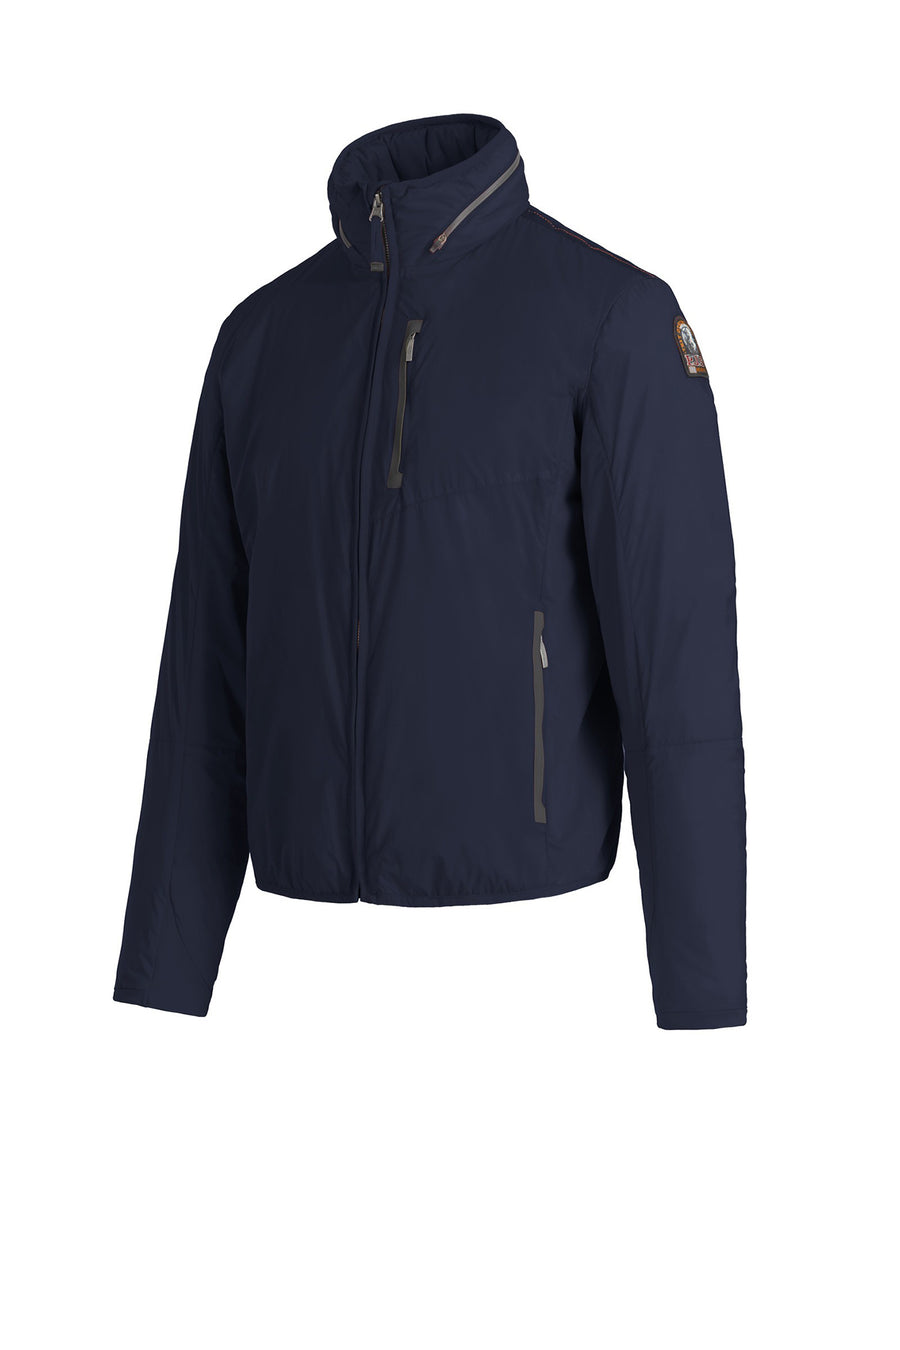 Parajumpers M-Duluth Men's Jacket SS18